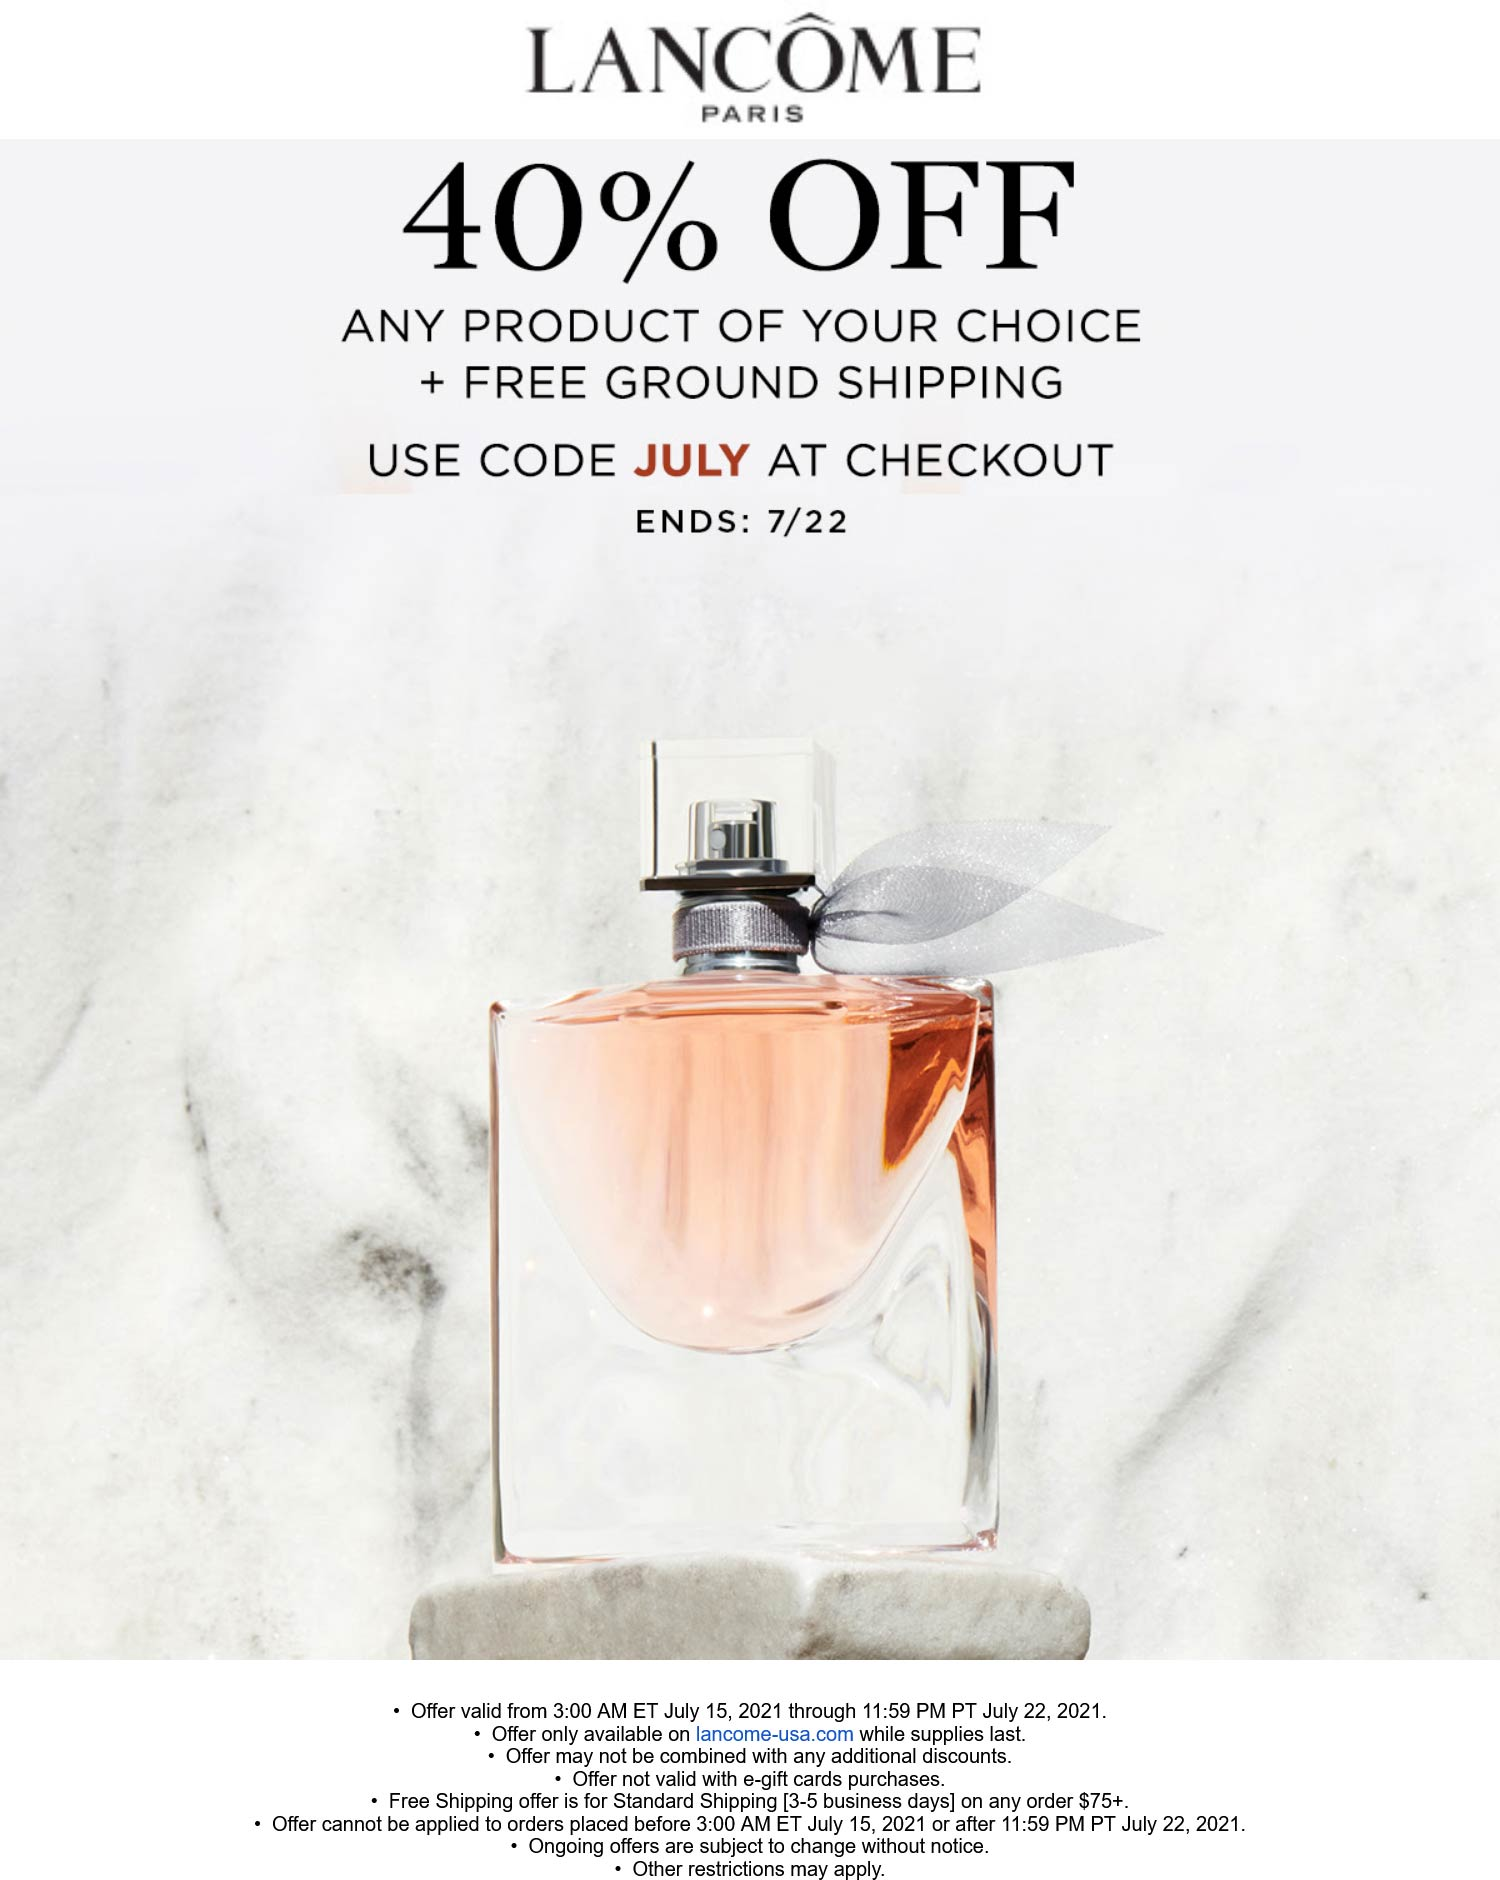 Lancome stores Coupon  40% off any product online at Lancome cosmetics via promo code JULY #lancome